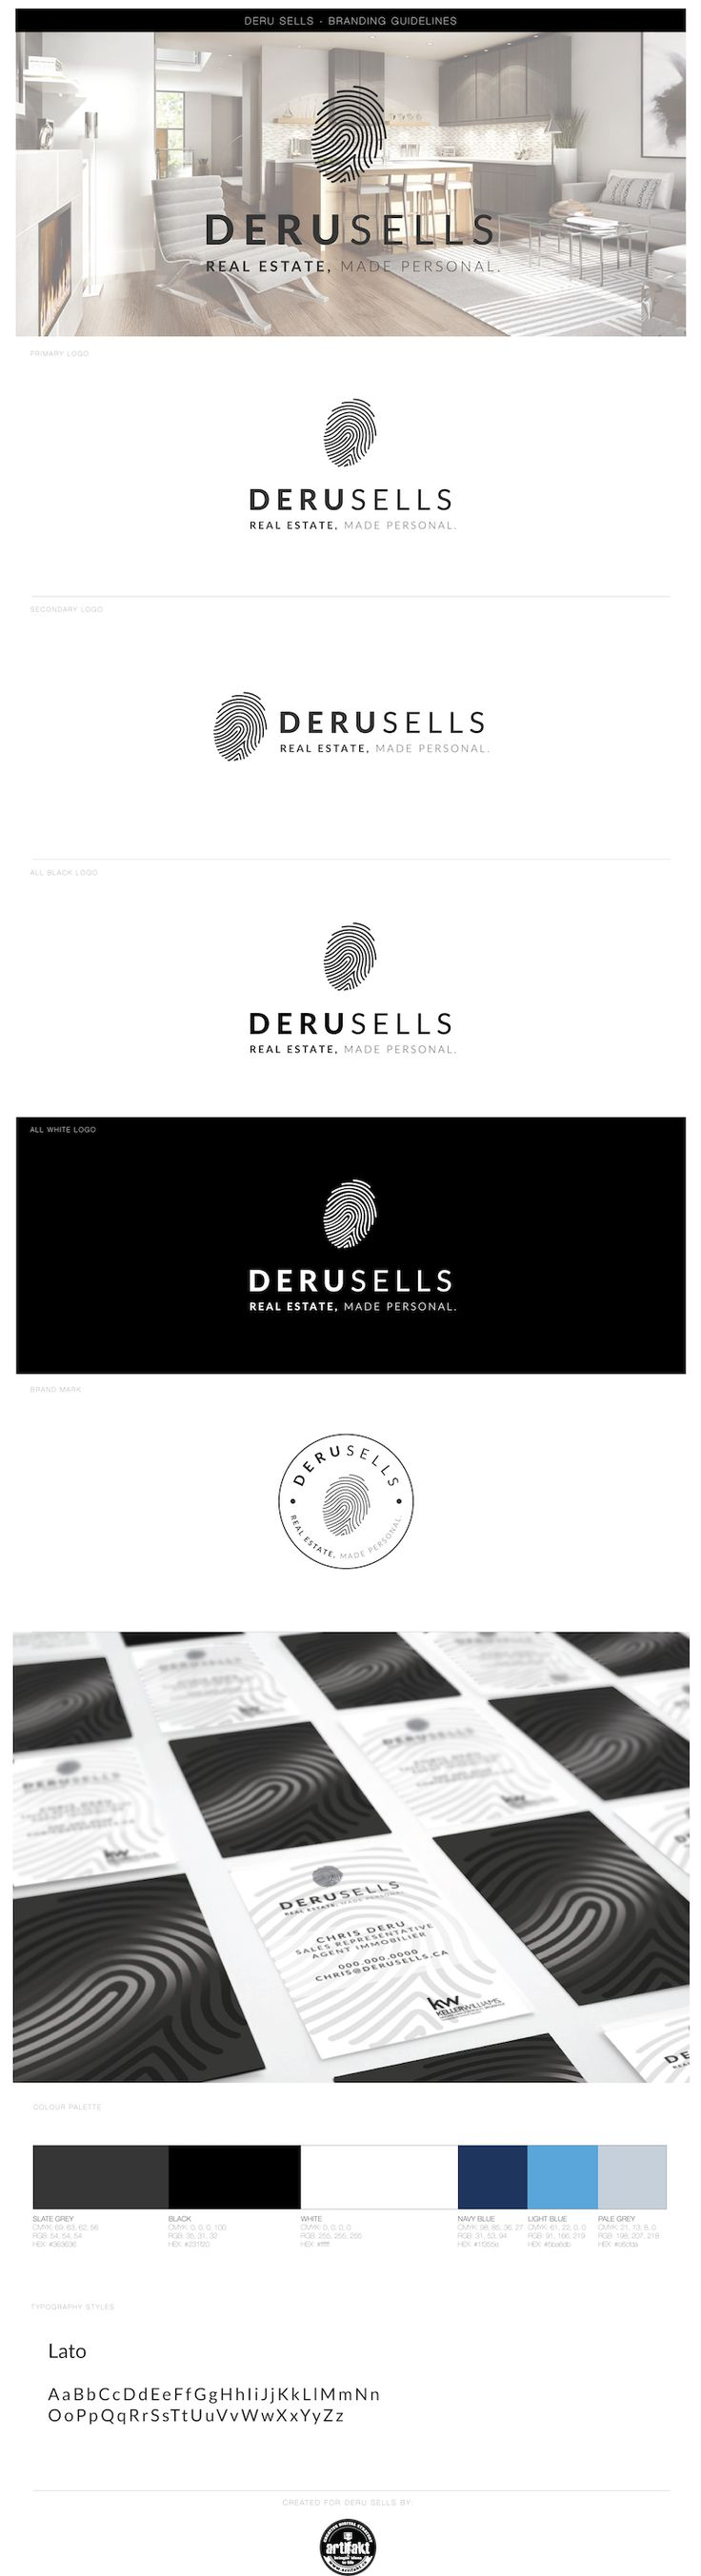 The completed branding guidelines we did for Chris Deru; a real estate agent in Toronto.